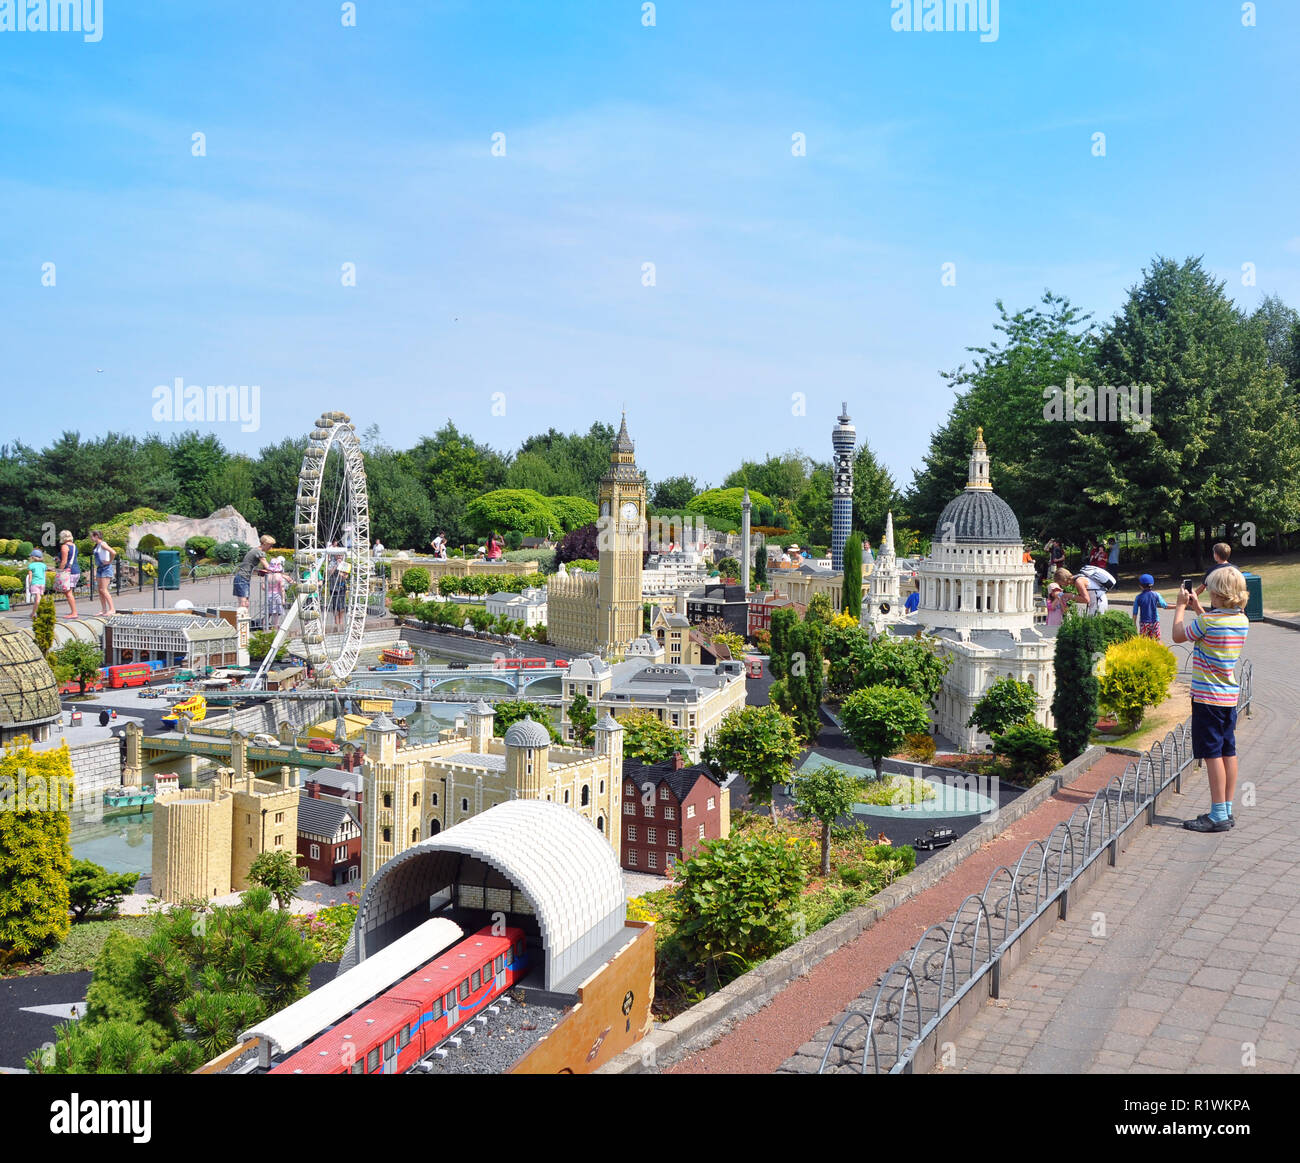 Editorial - LEGOLAND miniland in Windsor theme park. Wonderful landmarks built with bricks of lego. Boy photographing during his vacation. Stock Photo